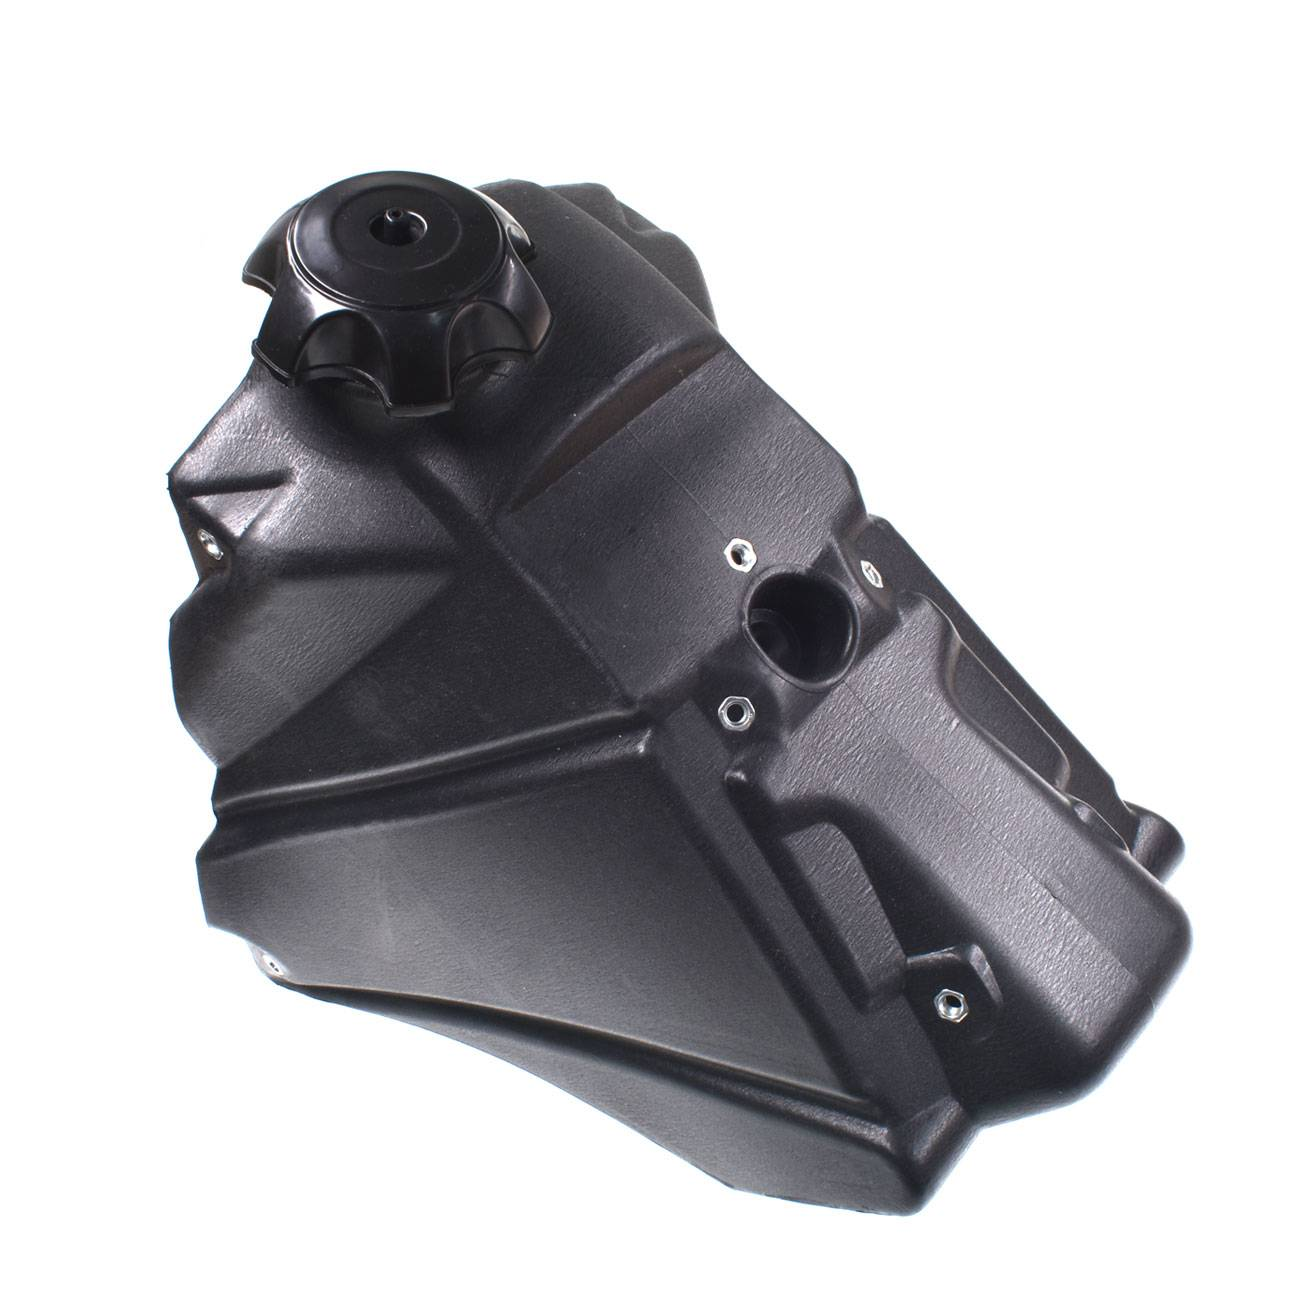 Gas Fuel Tank For KTM 85 250 BSE T8 170 189 Motorcycle Off Road Dirt Bike image